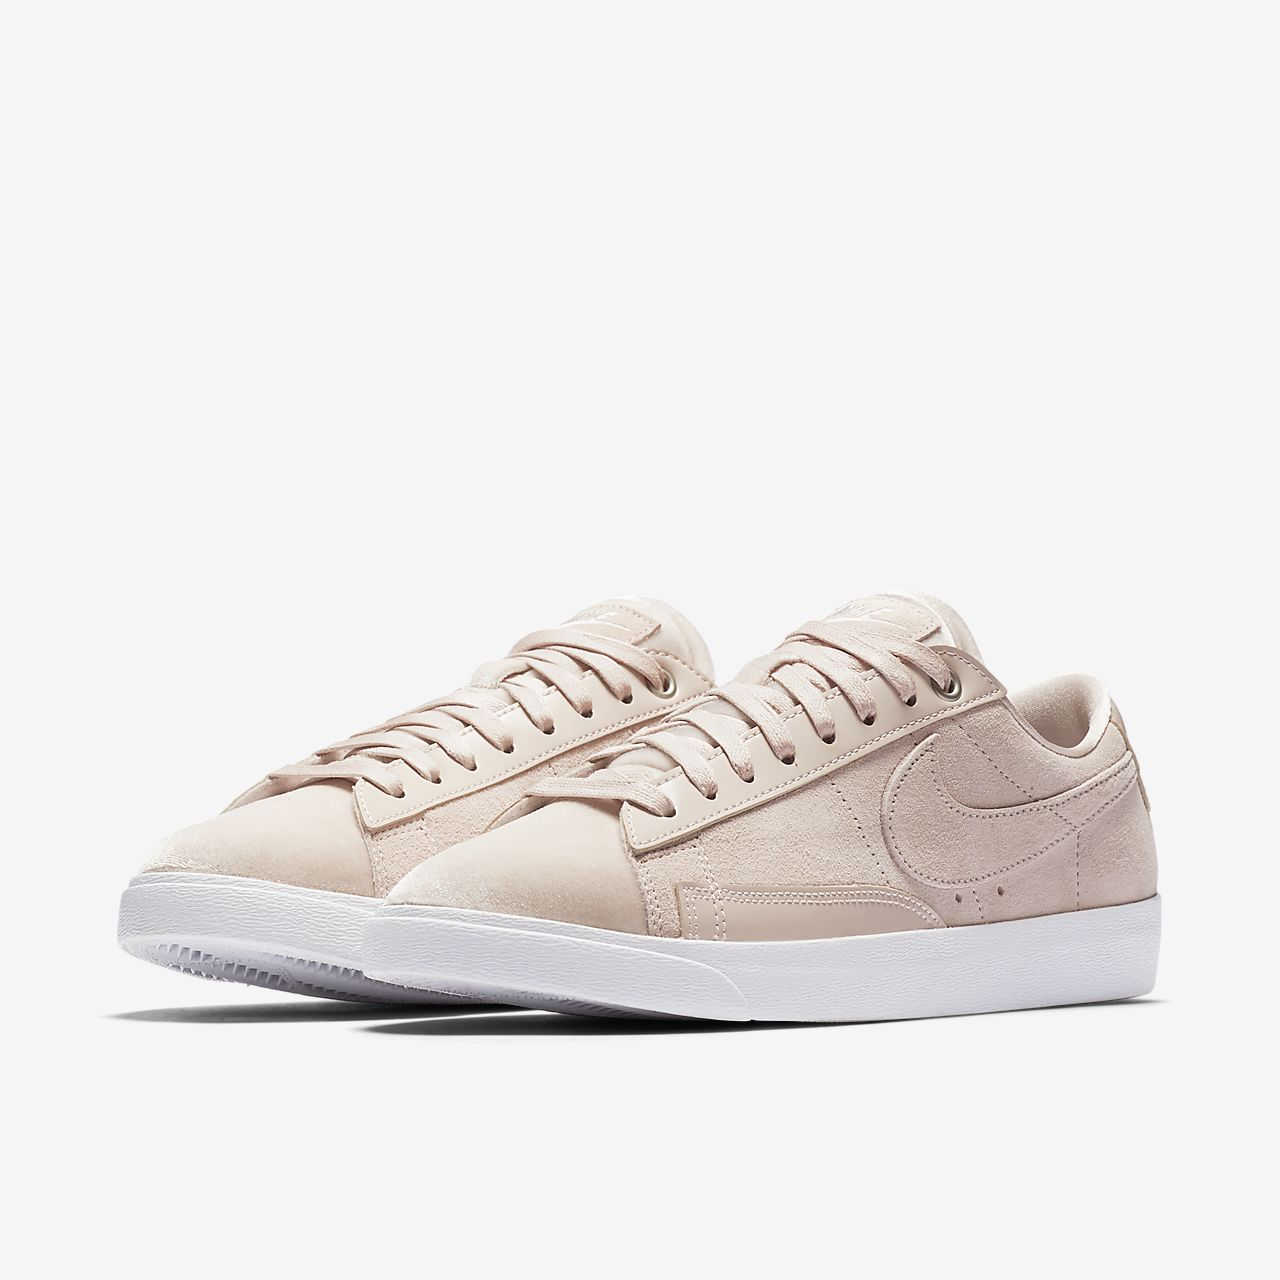 nike blazer low lx women 39 s shoe se. Black Bedroom Furniture Sets. Home Design Ideas